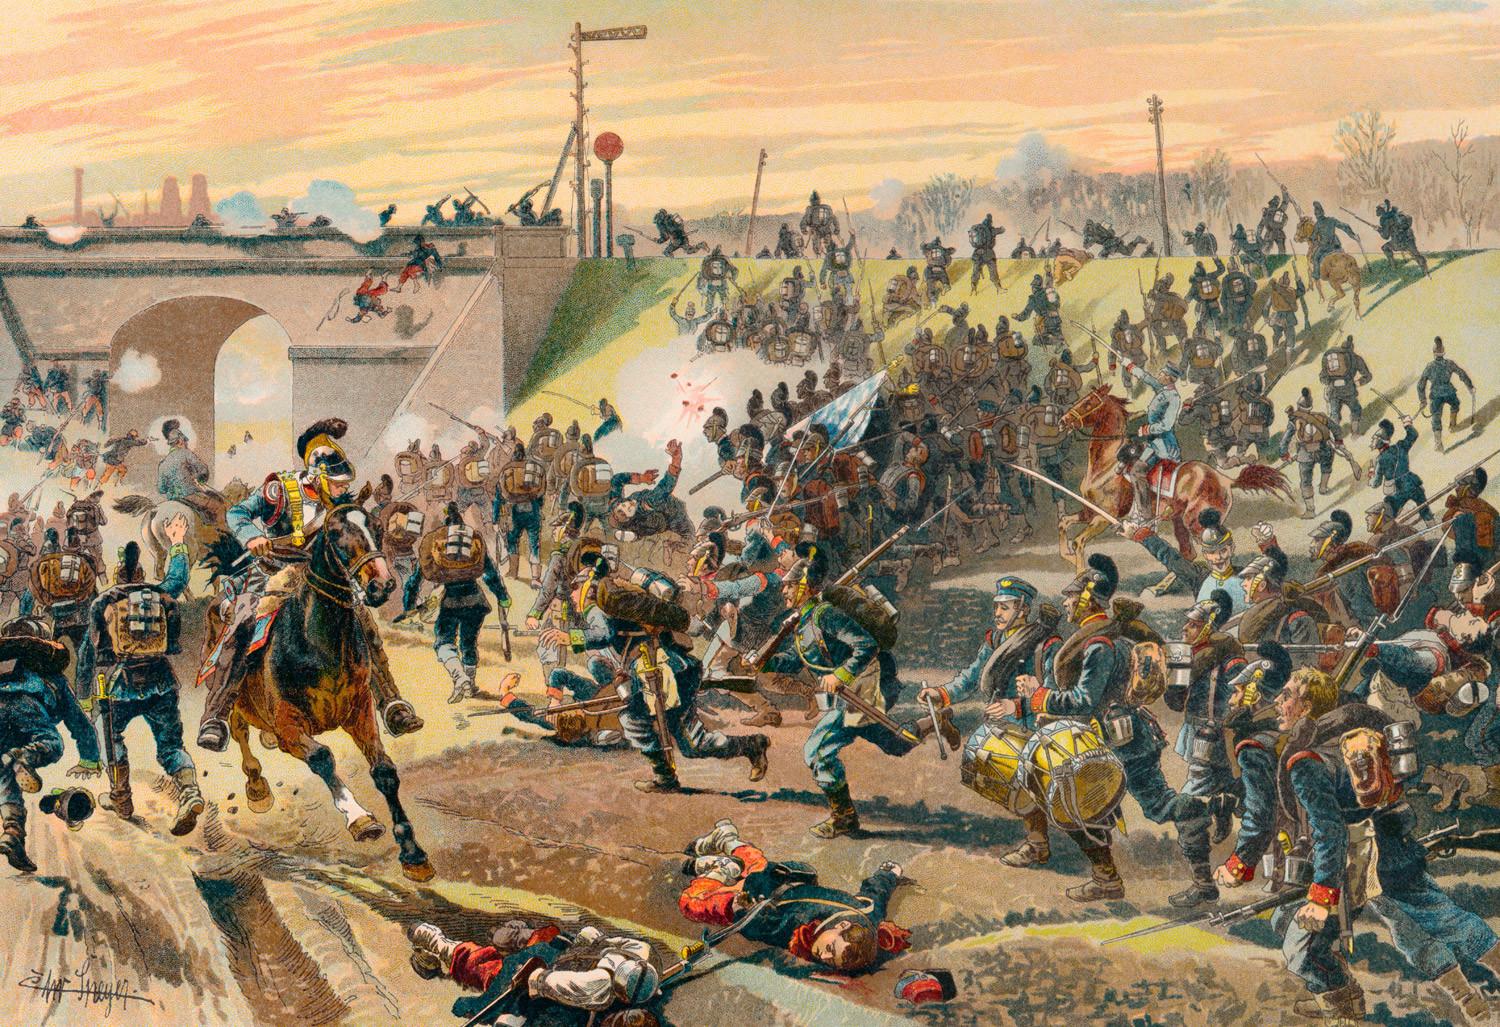 Storming of the railway embankment outside Orleans by the First Bavarian Corps on 11 October 1870, Franco-Prussian War or Franco-German War, 1870-1871, between the French Empire and the Kingdom of Prussia.